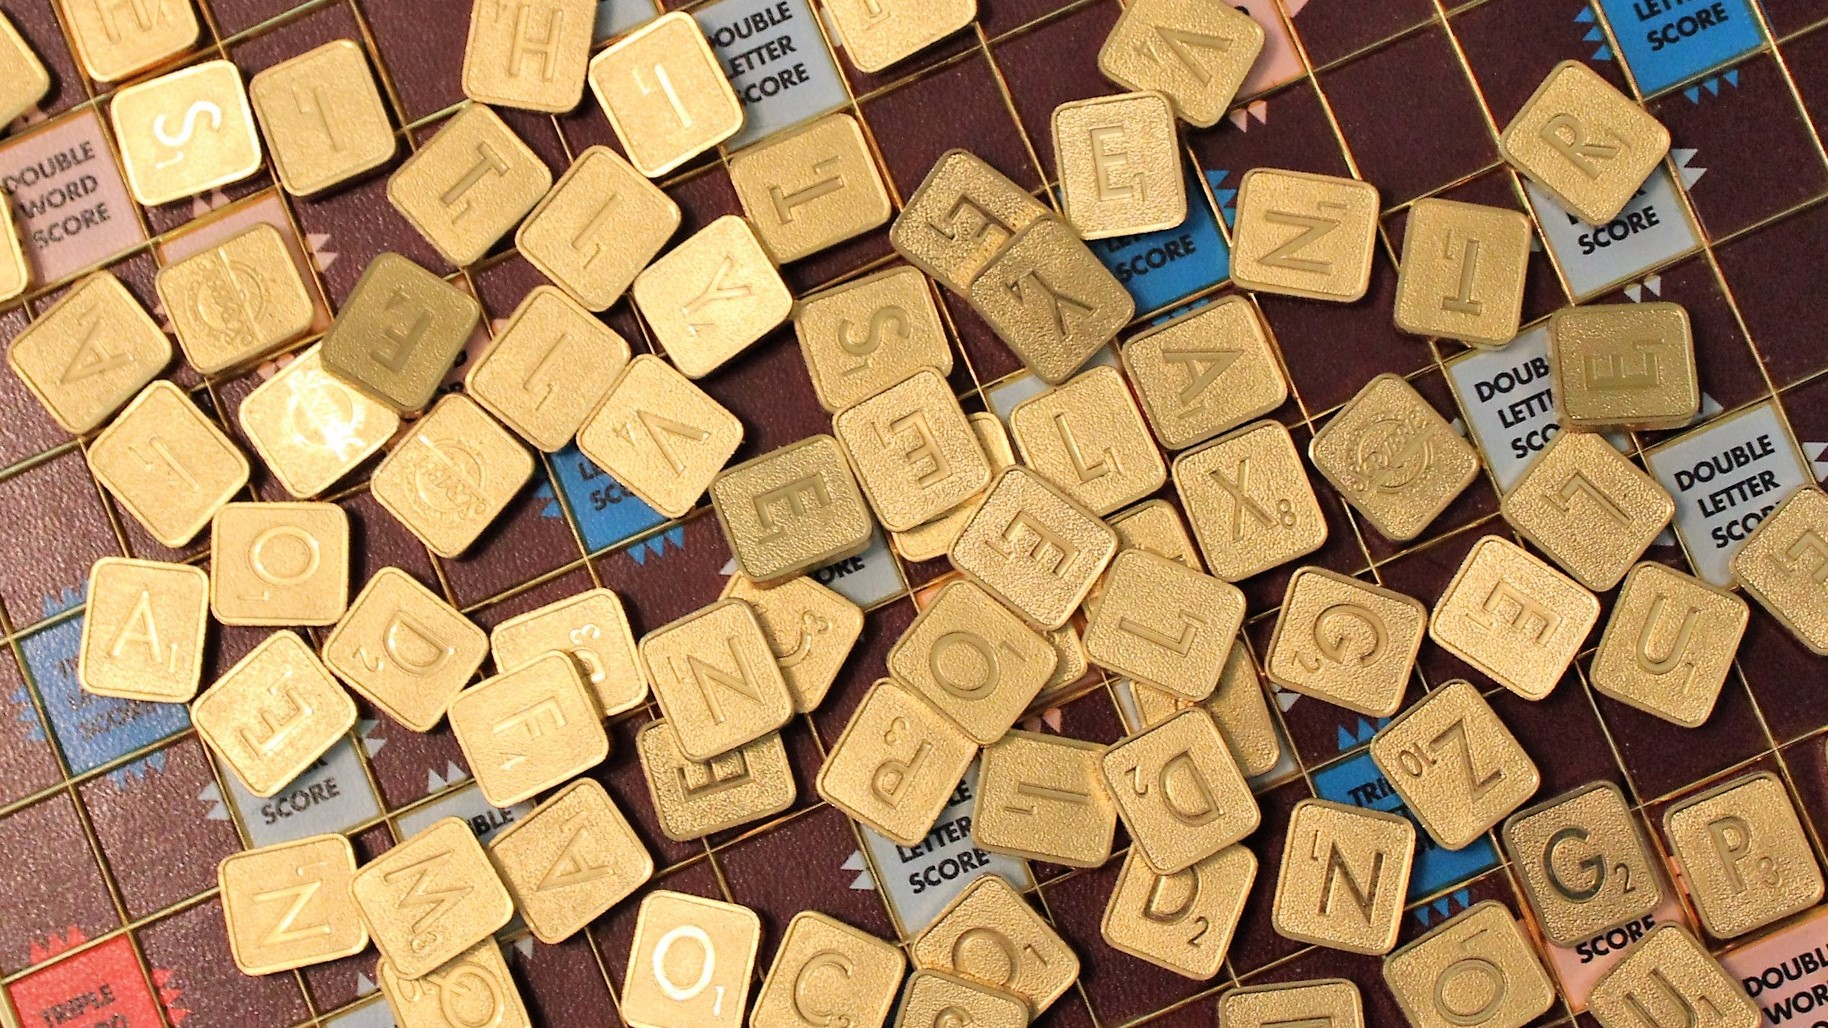 gold-plated Scrabble tiles scattered across the board